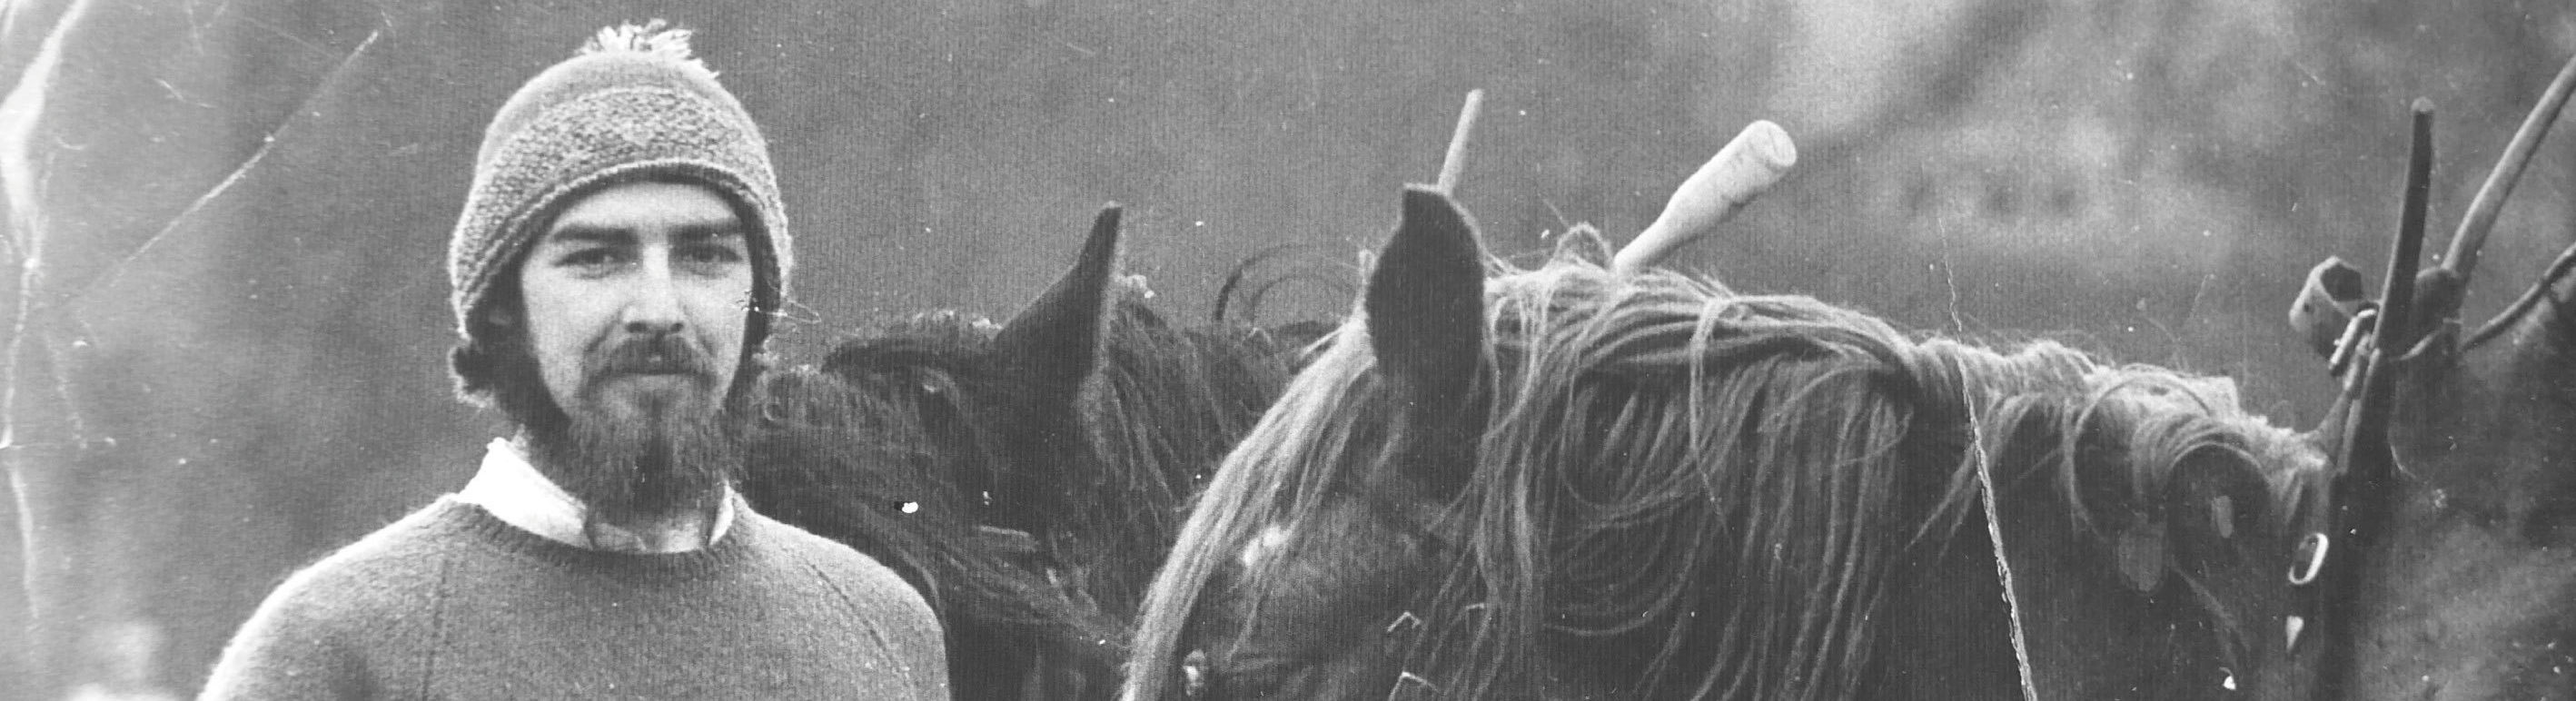 Southlight Magazine 2020 - cover image. 1970s photograph of man with horses